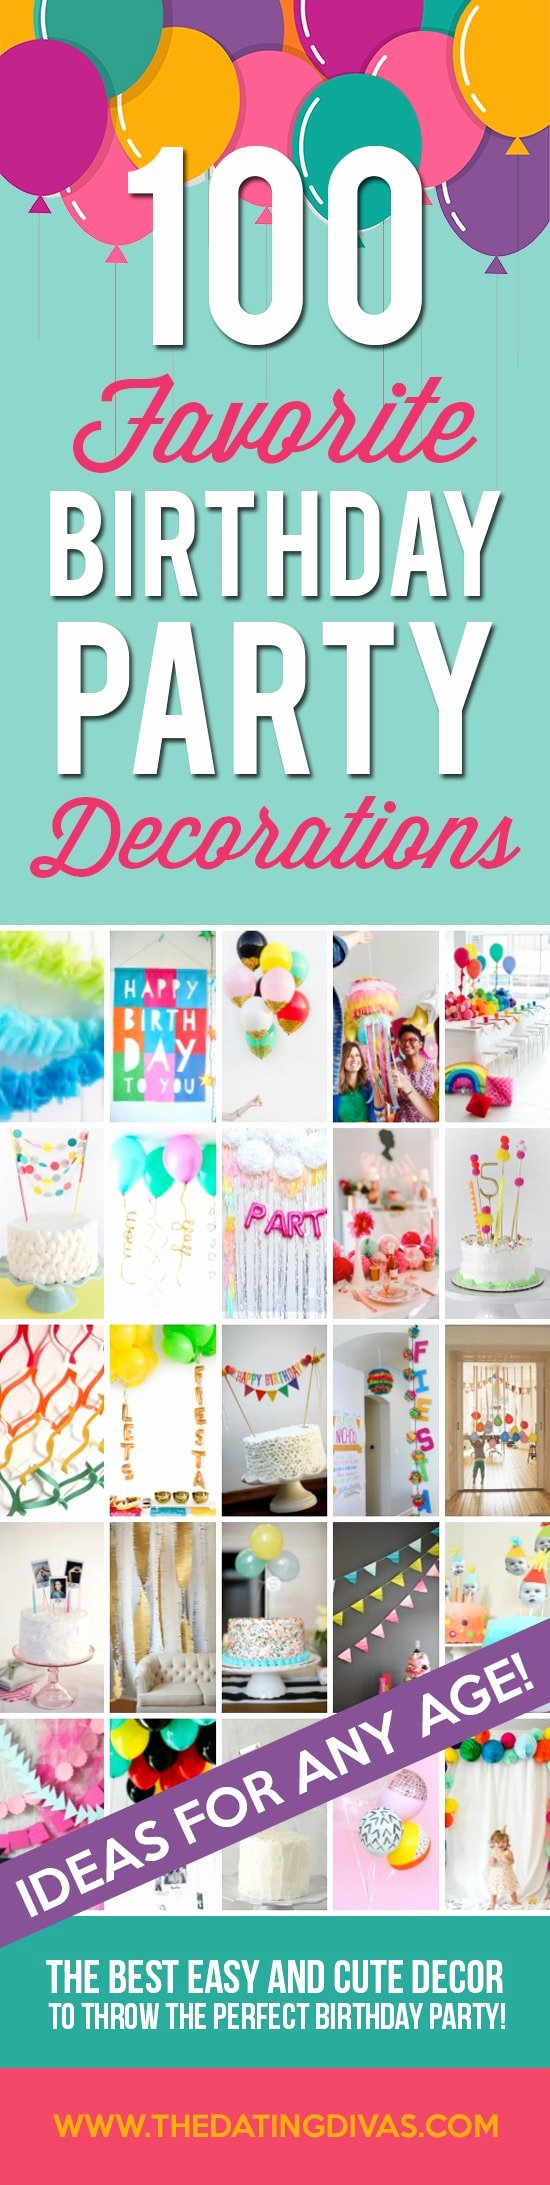 For Birthday Decoration Ideas Fresh 100 Birthday Party Decoration Ideas the Dating Divas